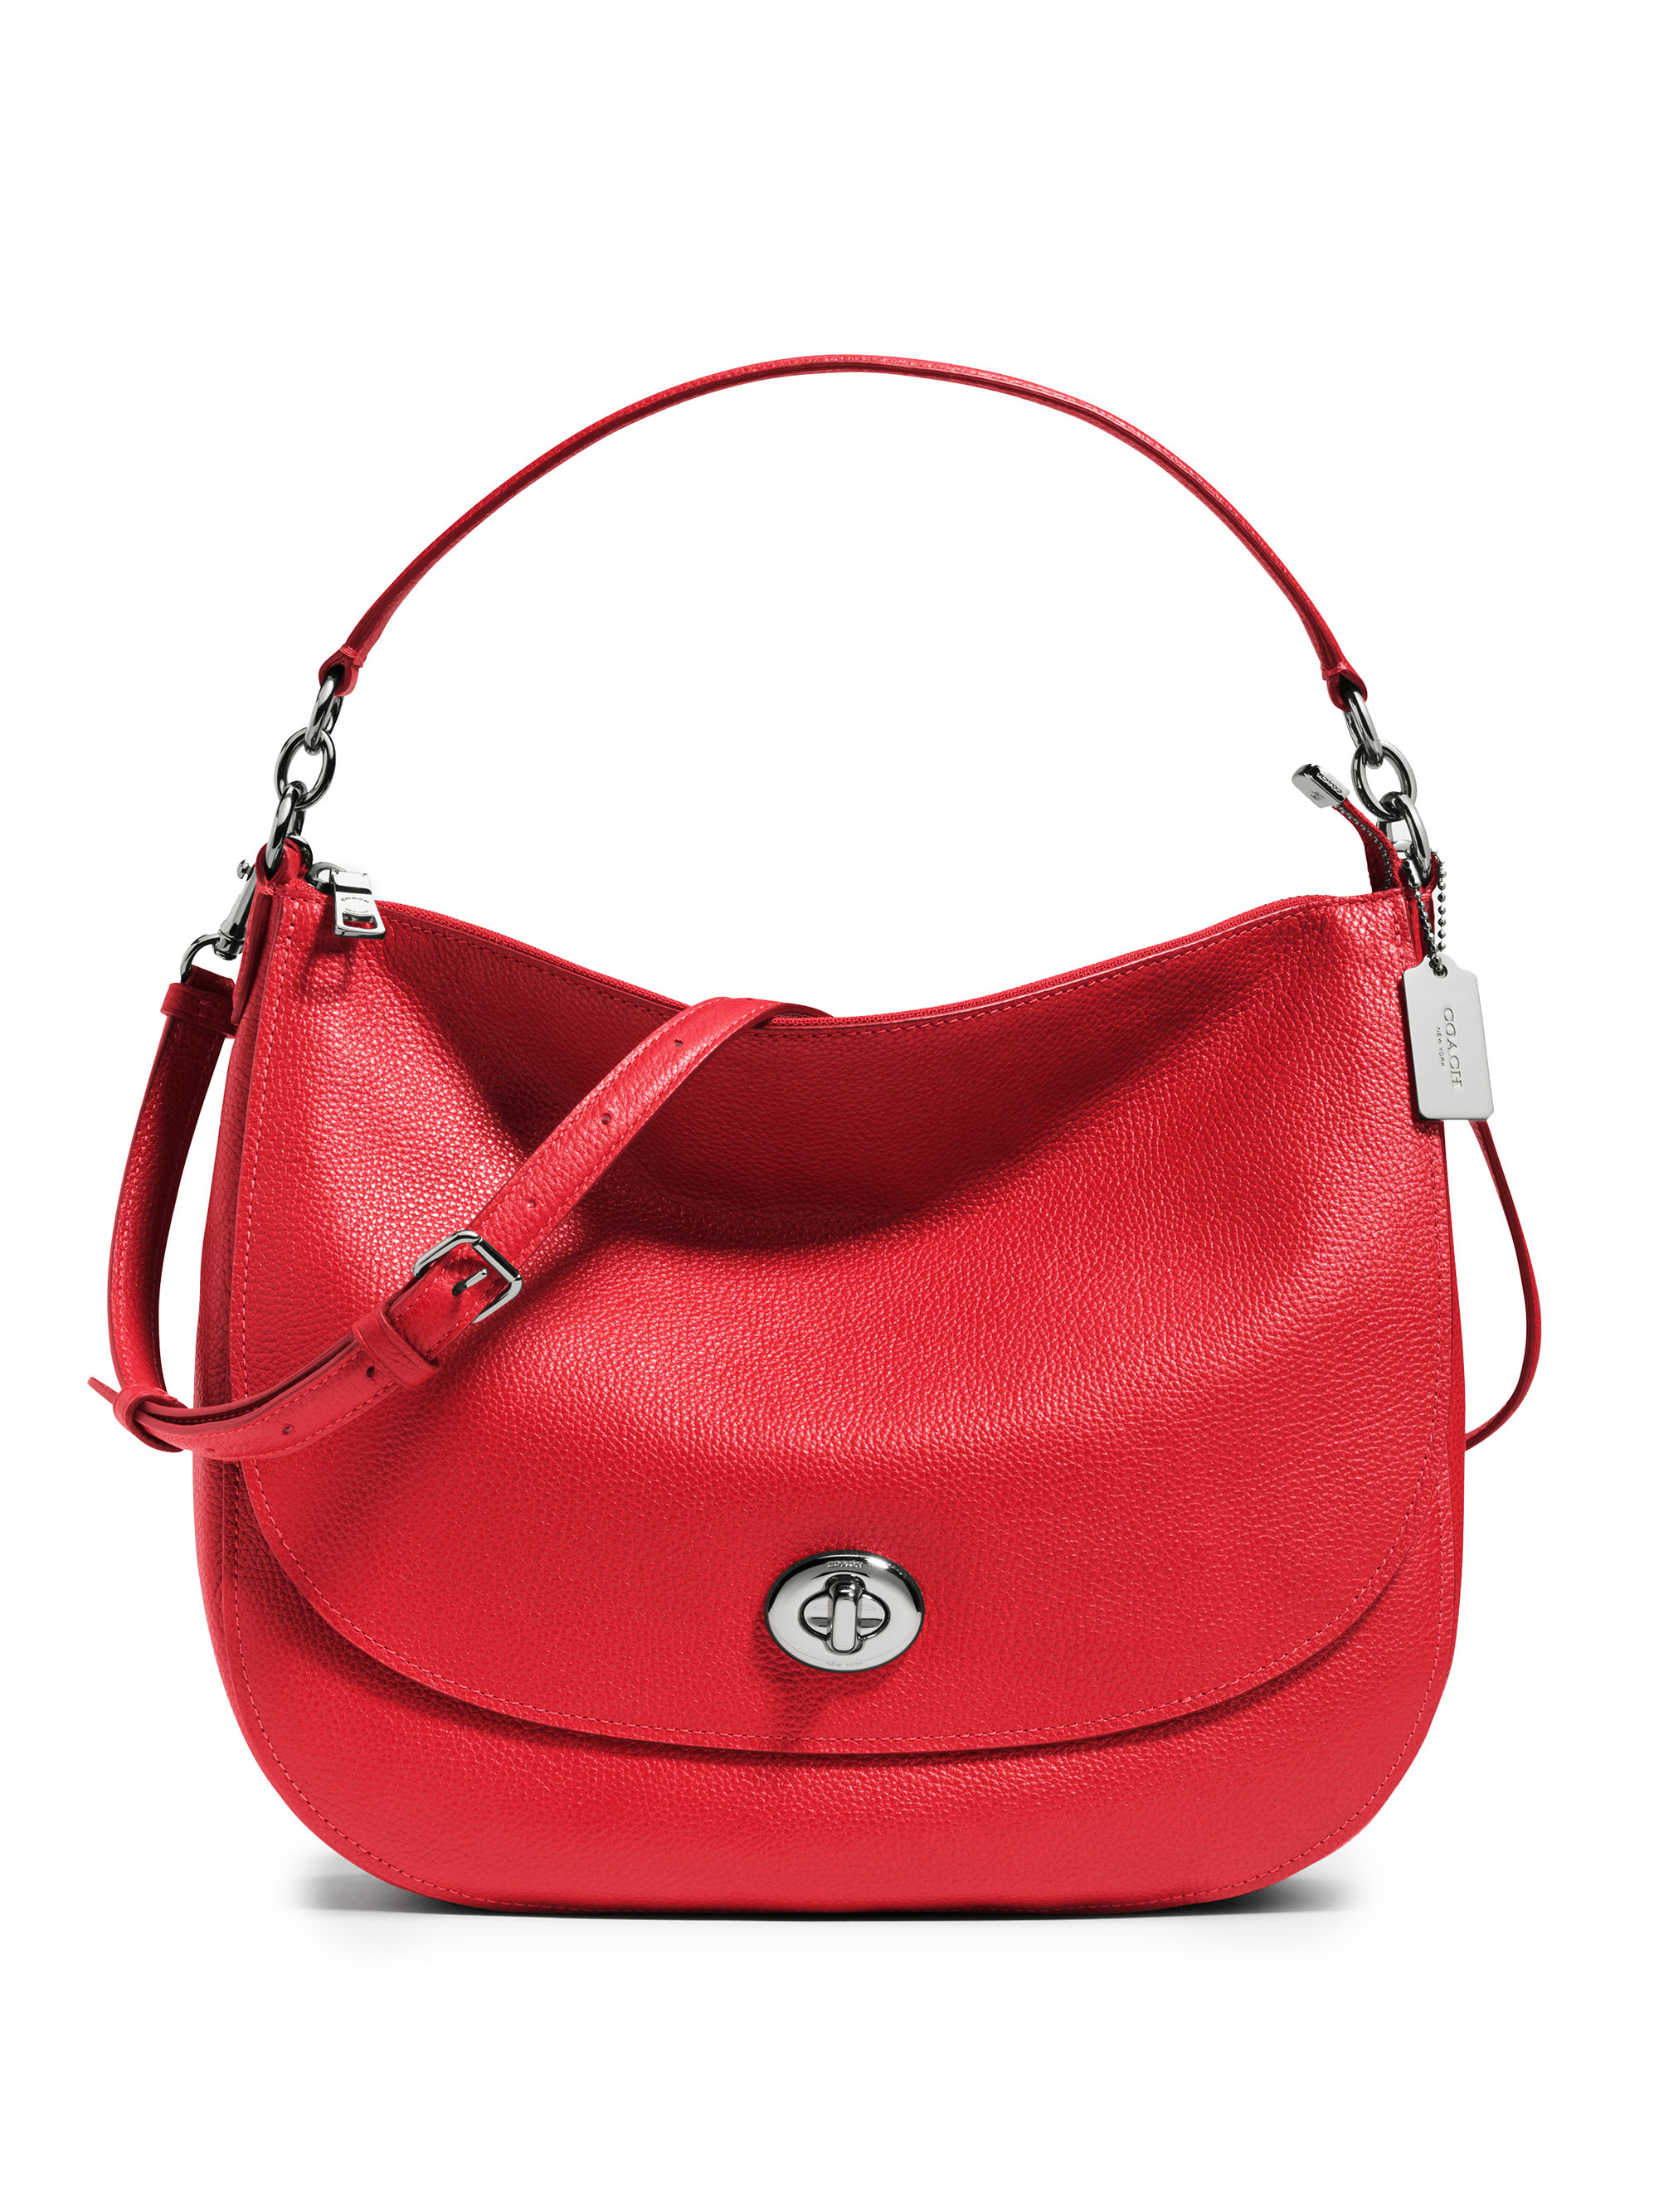 Coach Pebbled Leather Turnlock Hobo Bag in Red | Lyst